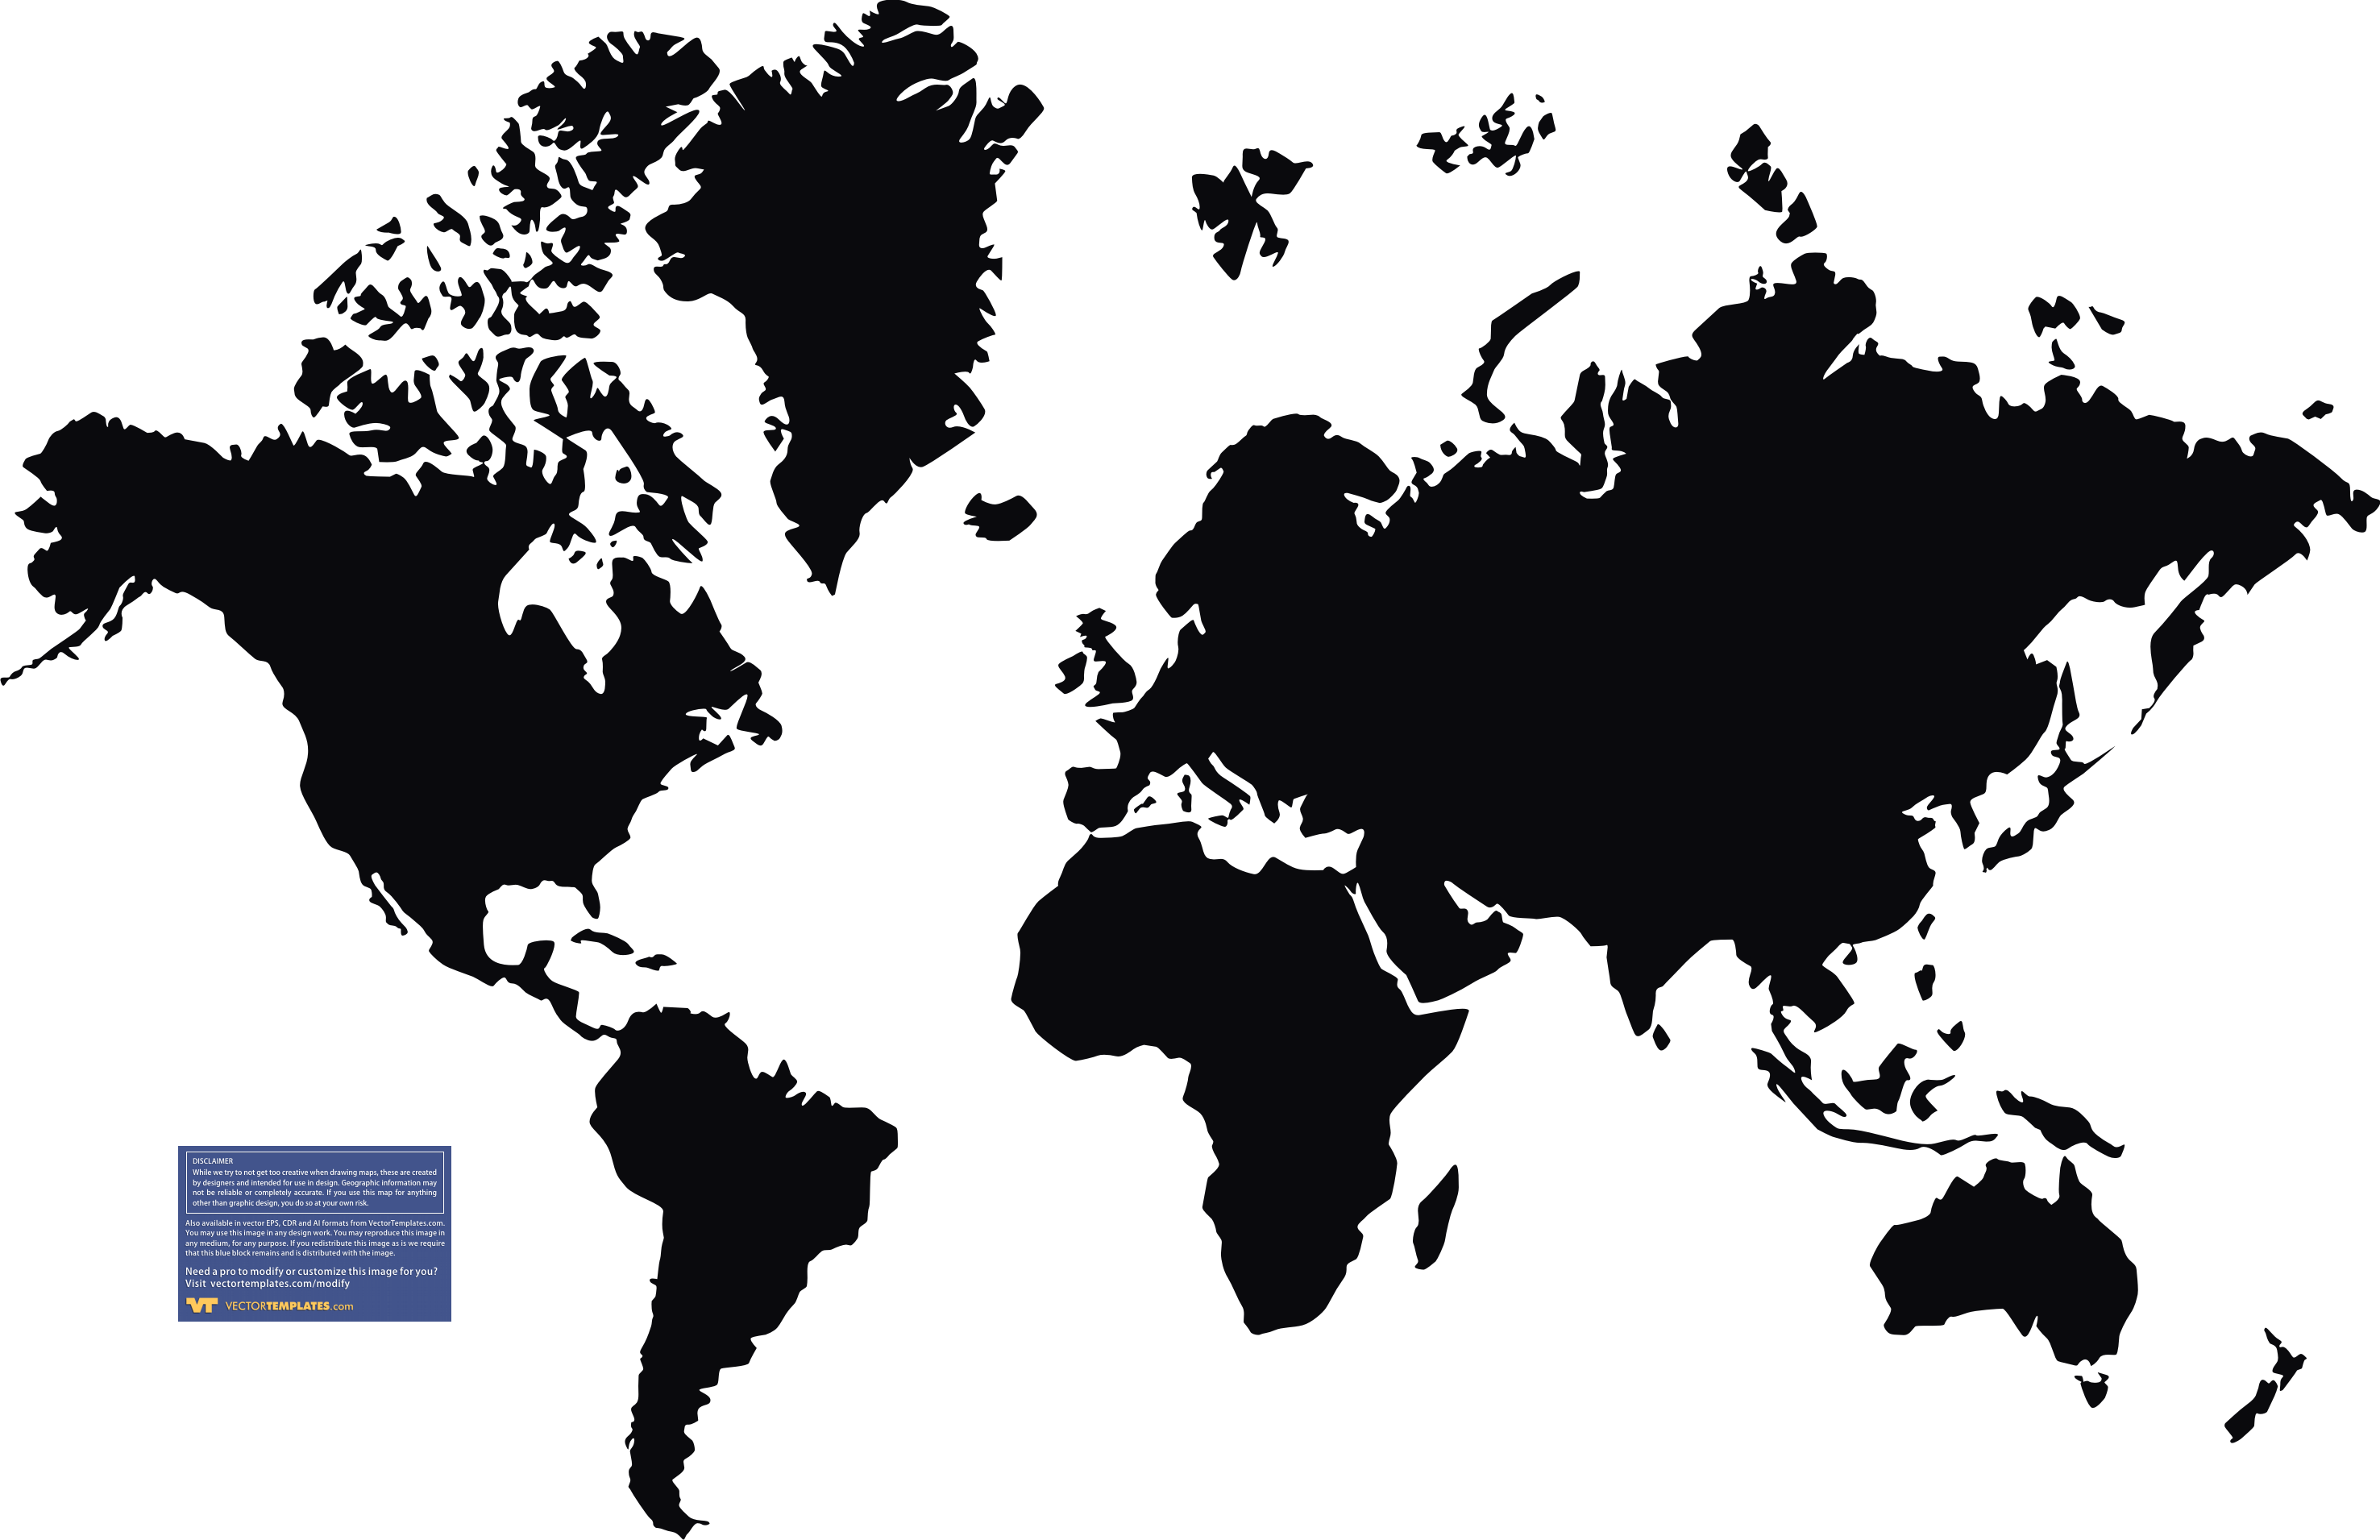 World map clipart uship svg royalty free World map outline clipart black and white - ClipartFest svg royalty free